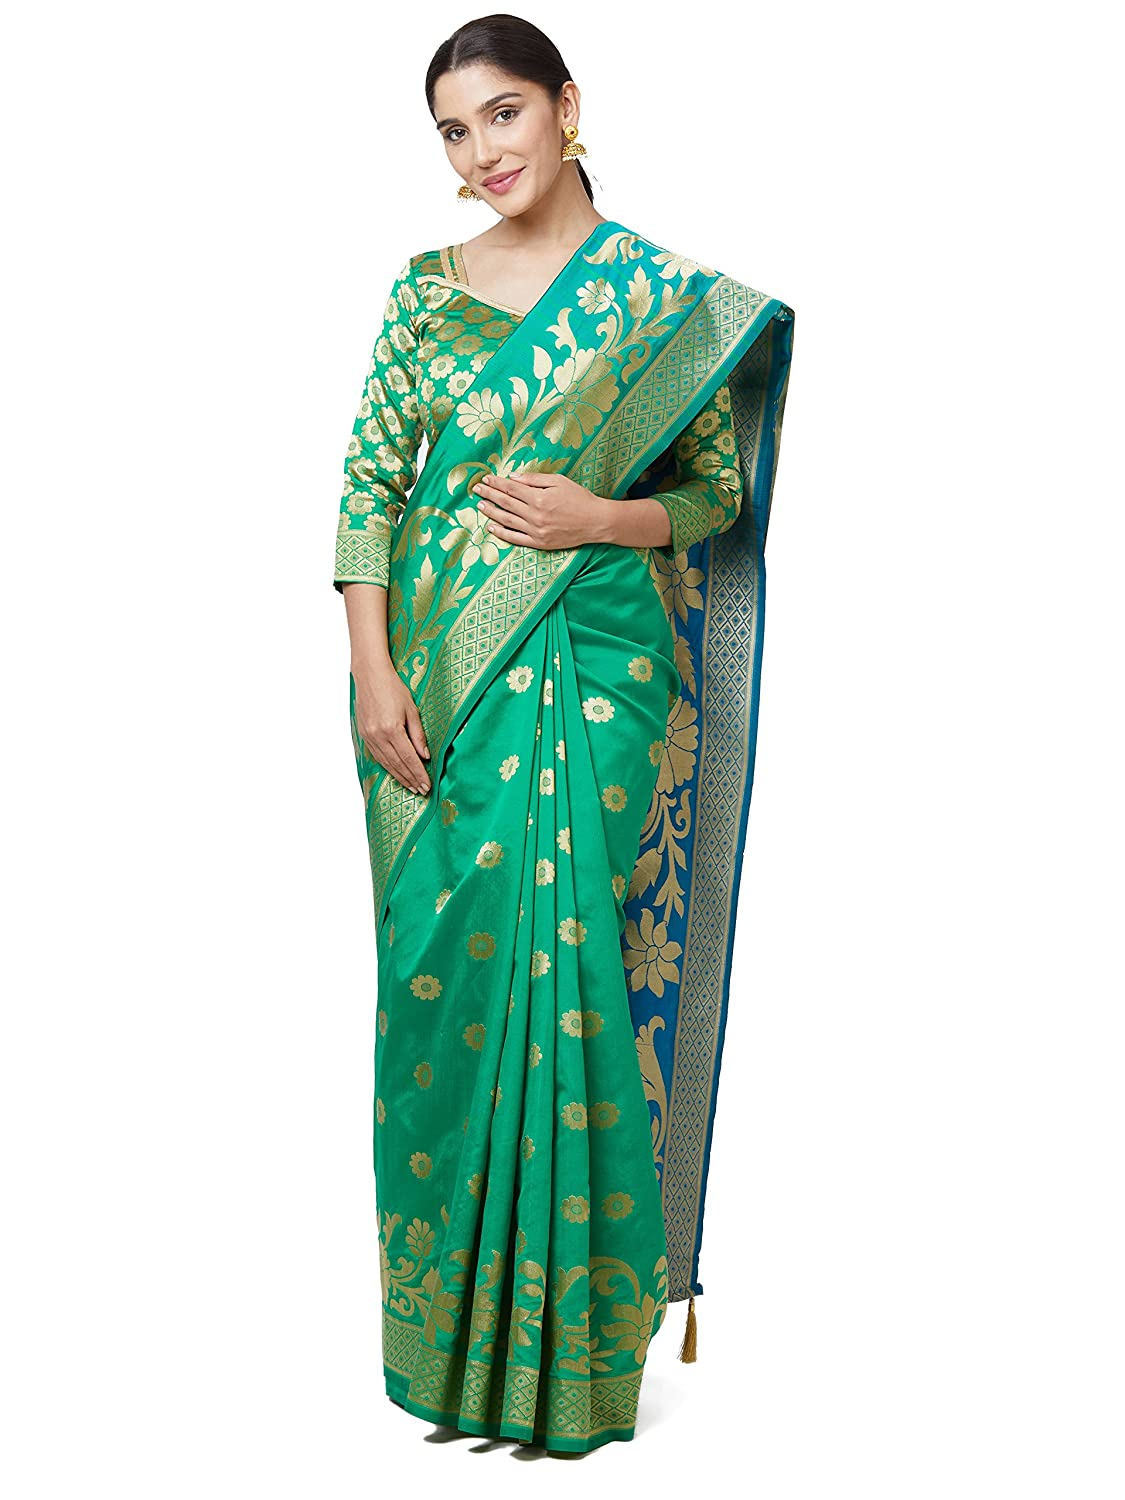 091f04e755232 SareeShop Sarees Women s Green Color Cotton Silk Jacquard Saree With Blouse    591F9AC2D8530213  Amazon.in  Clothing   Accessories